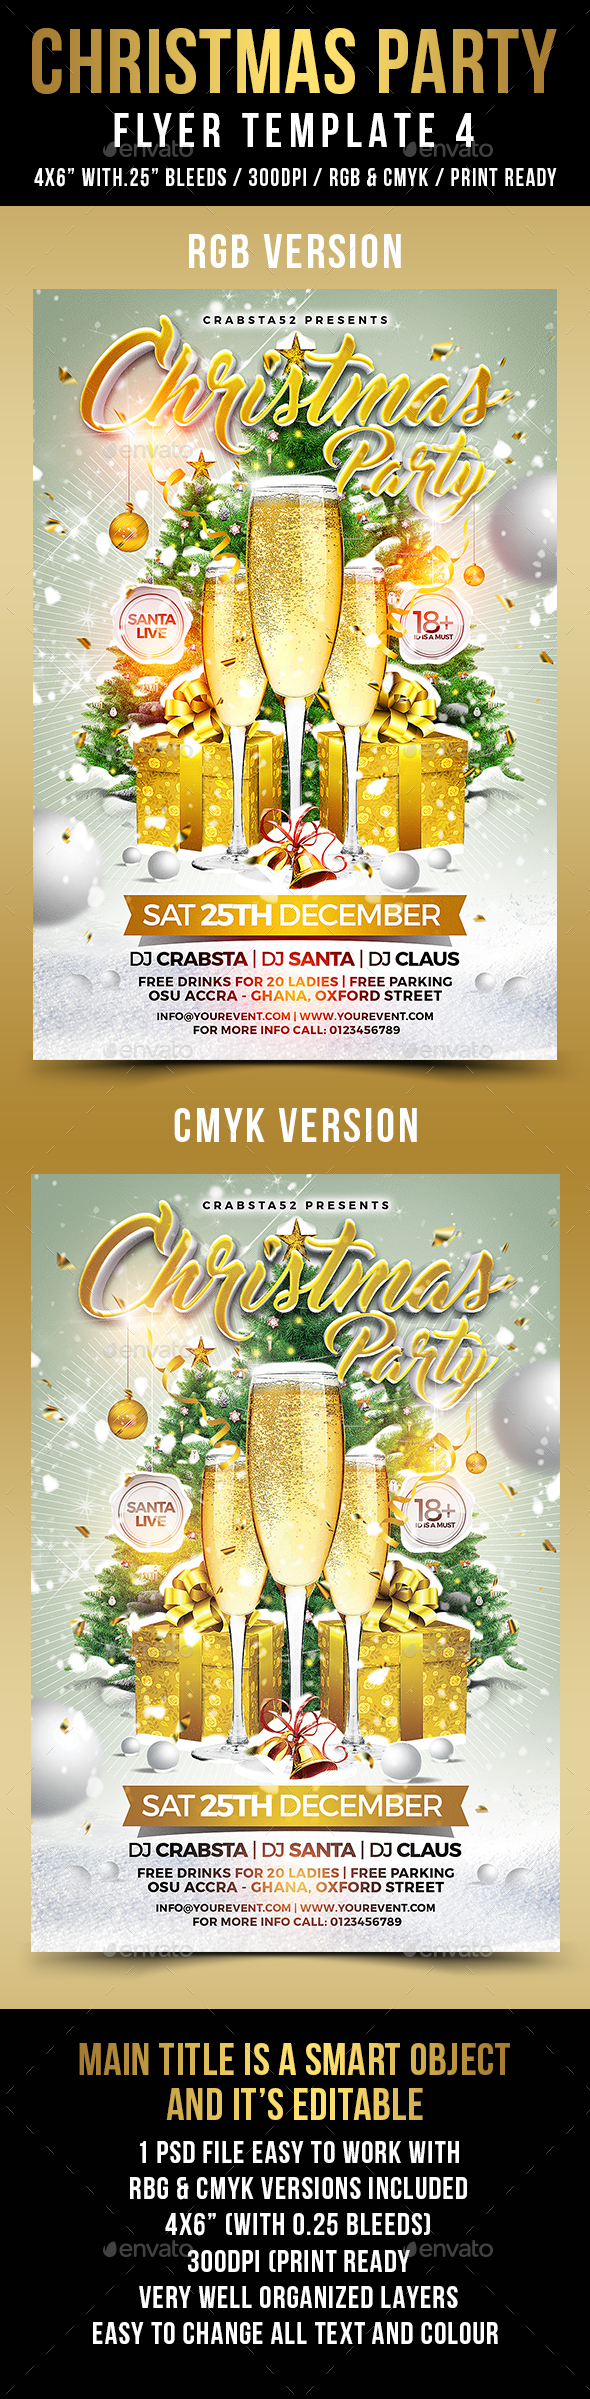 Christmas Party Flyer Template 4 - Flyers Print Templates